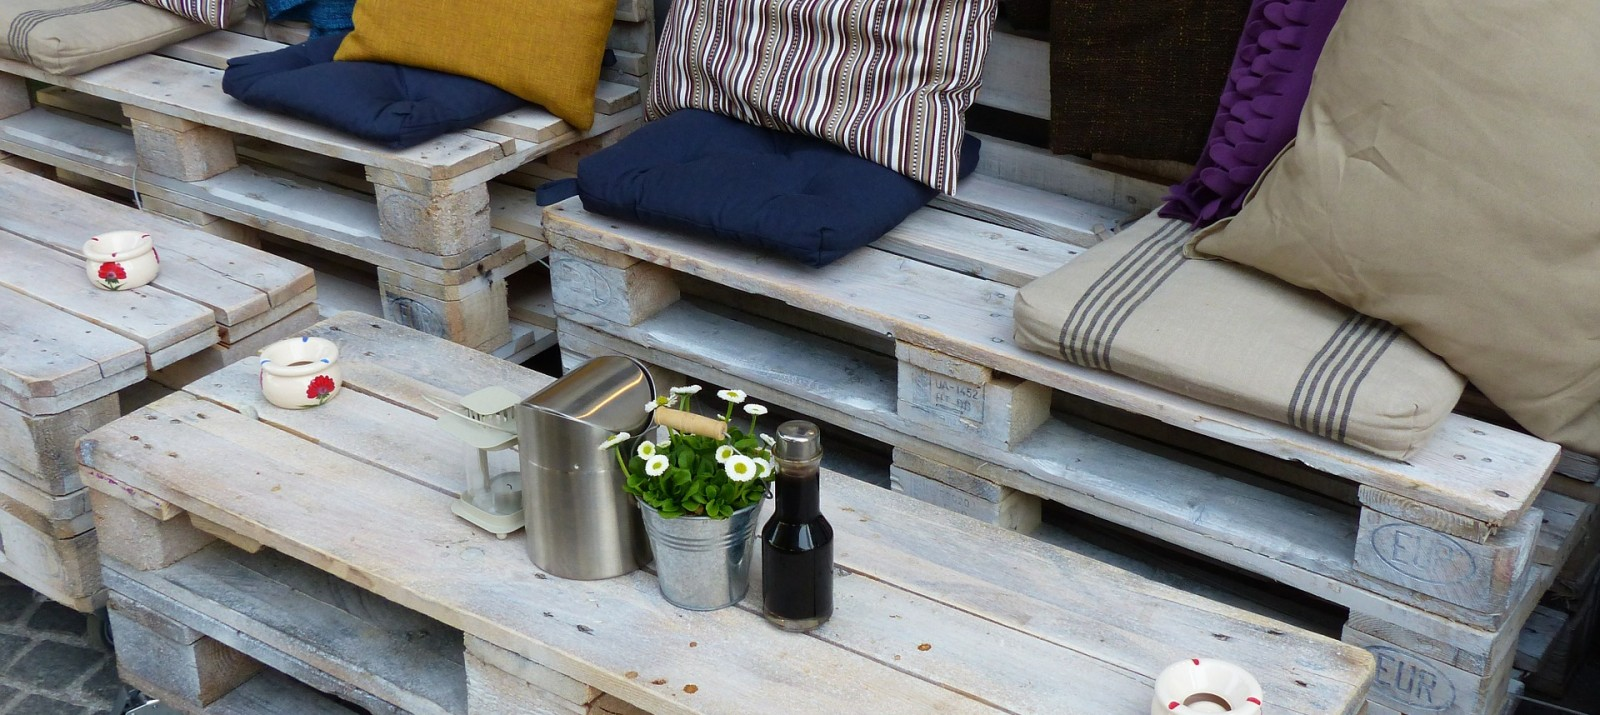 diy wood pallet patio furniture with colorful cushions and storage